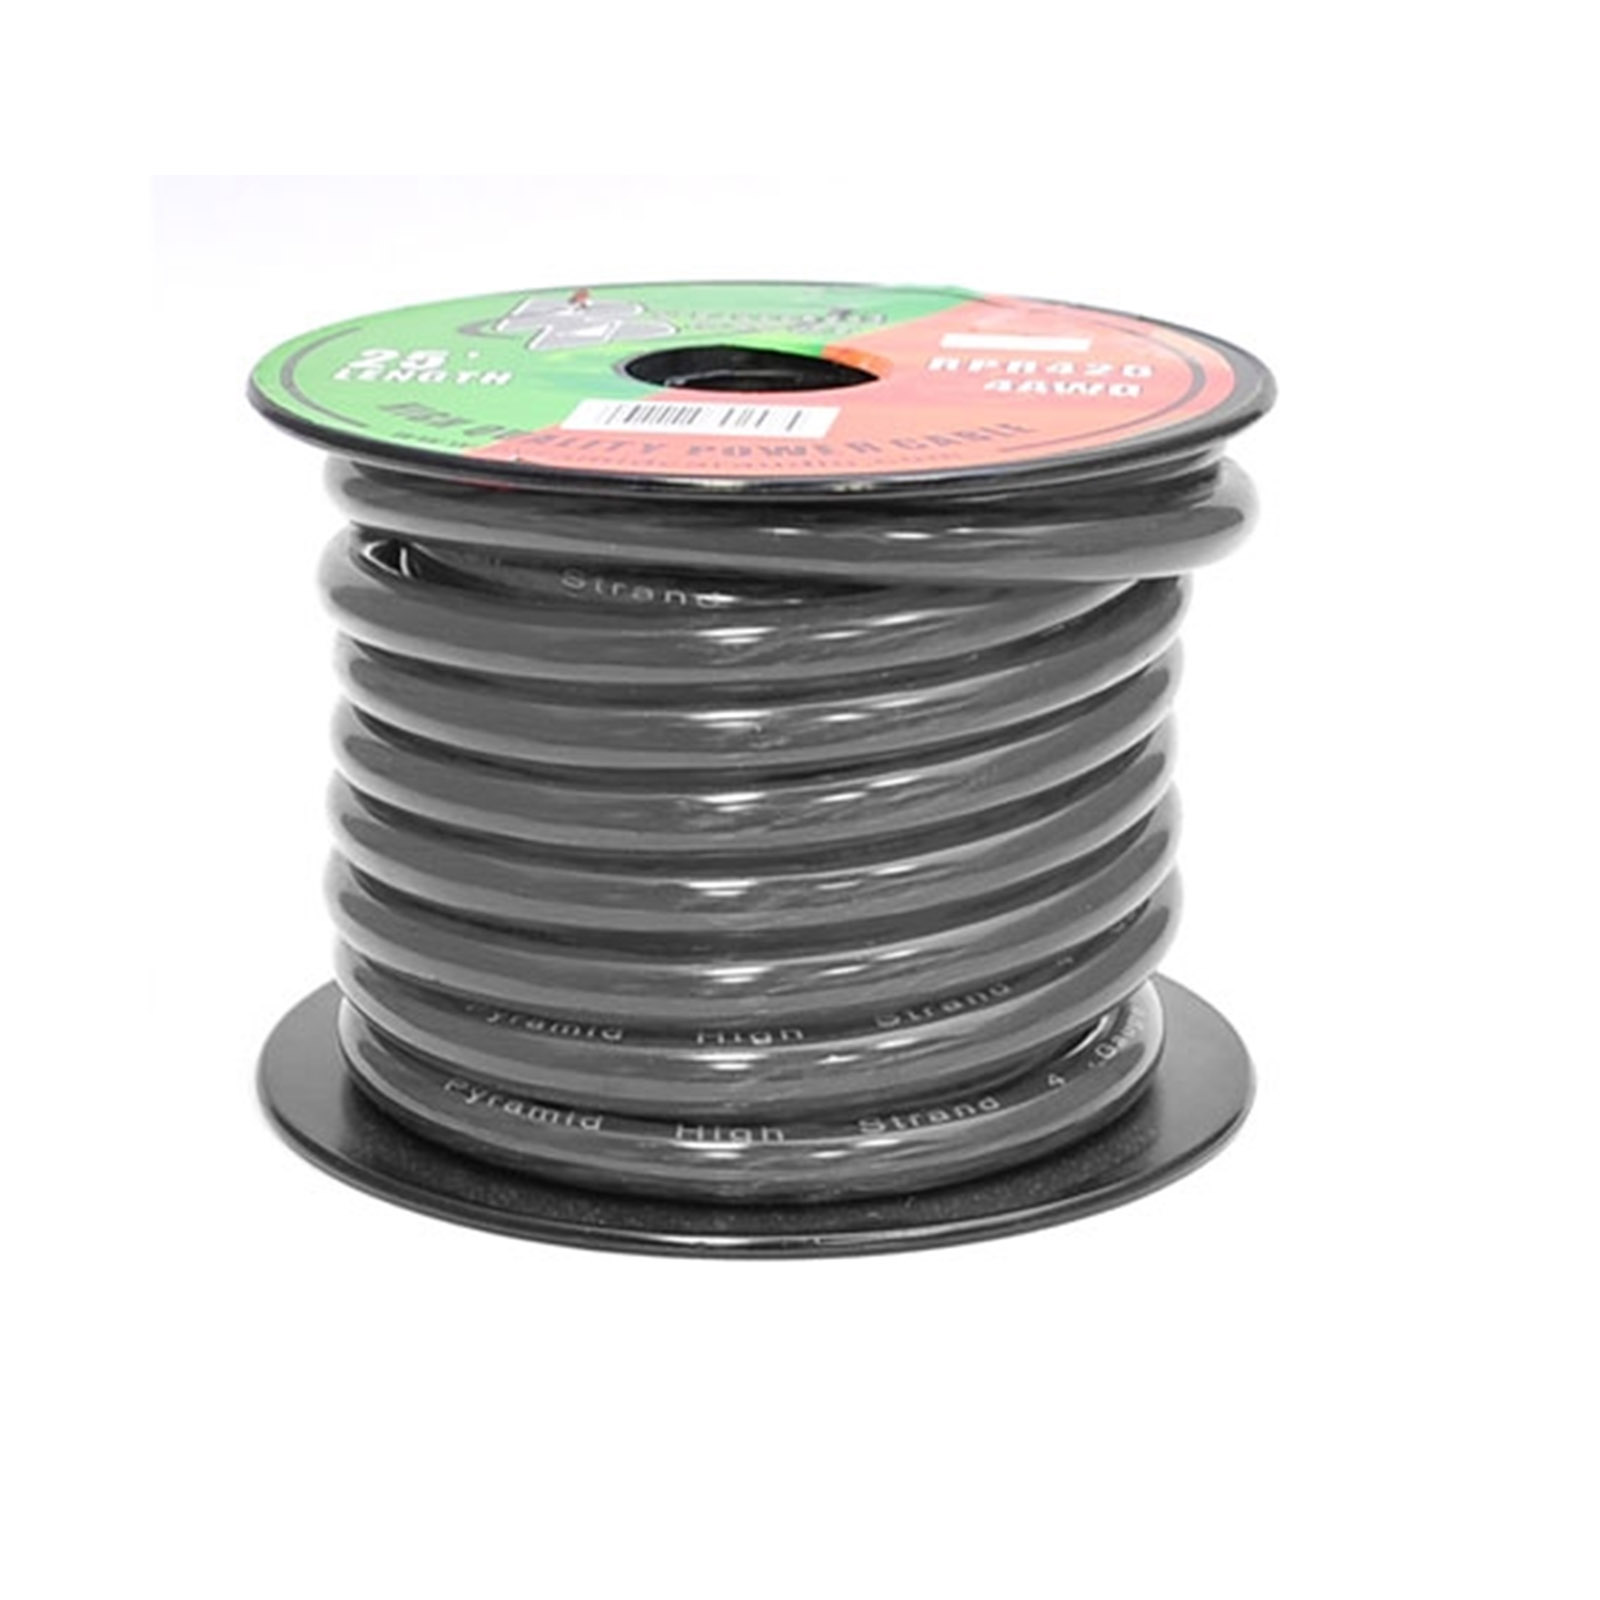 Pyramid 4 Gauge Black Ground Wire 25 ft. OFC